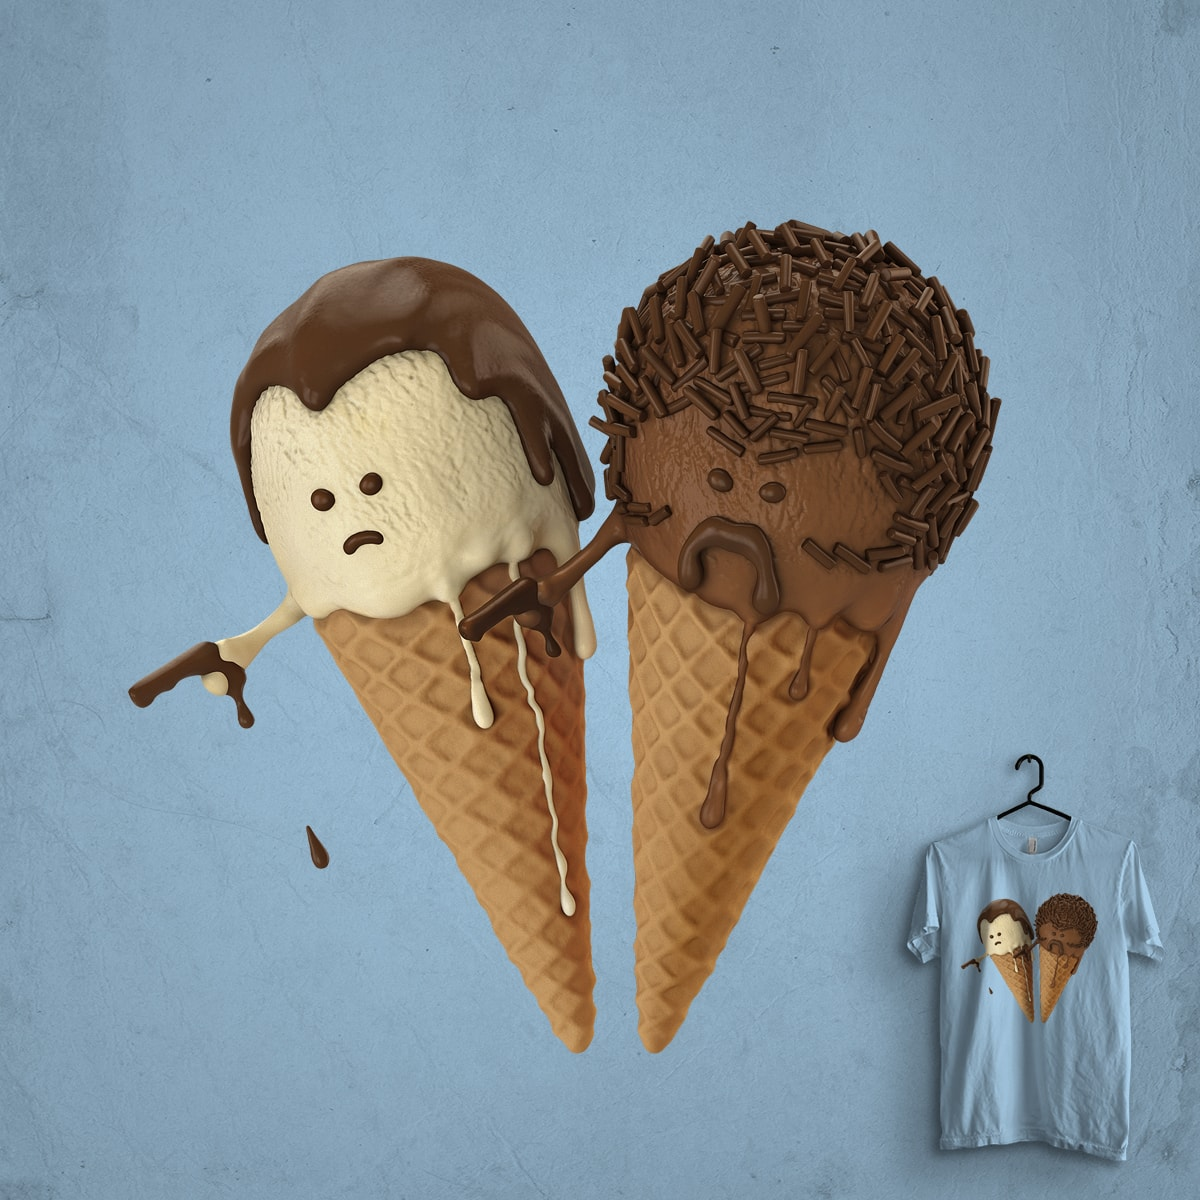 Pulp Cream by idilek on Threadless